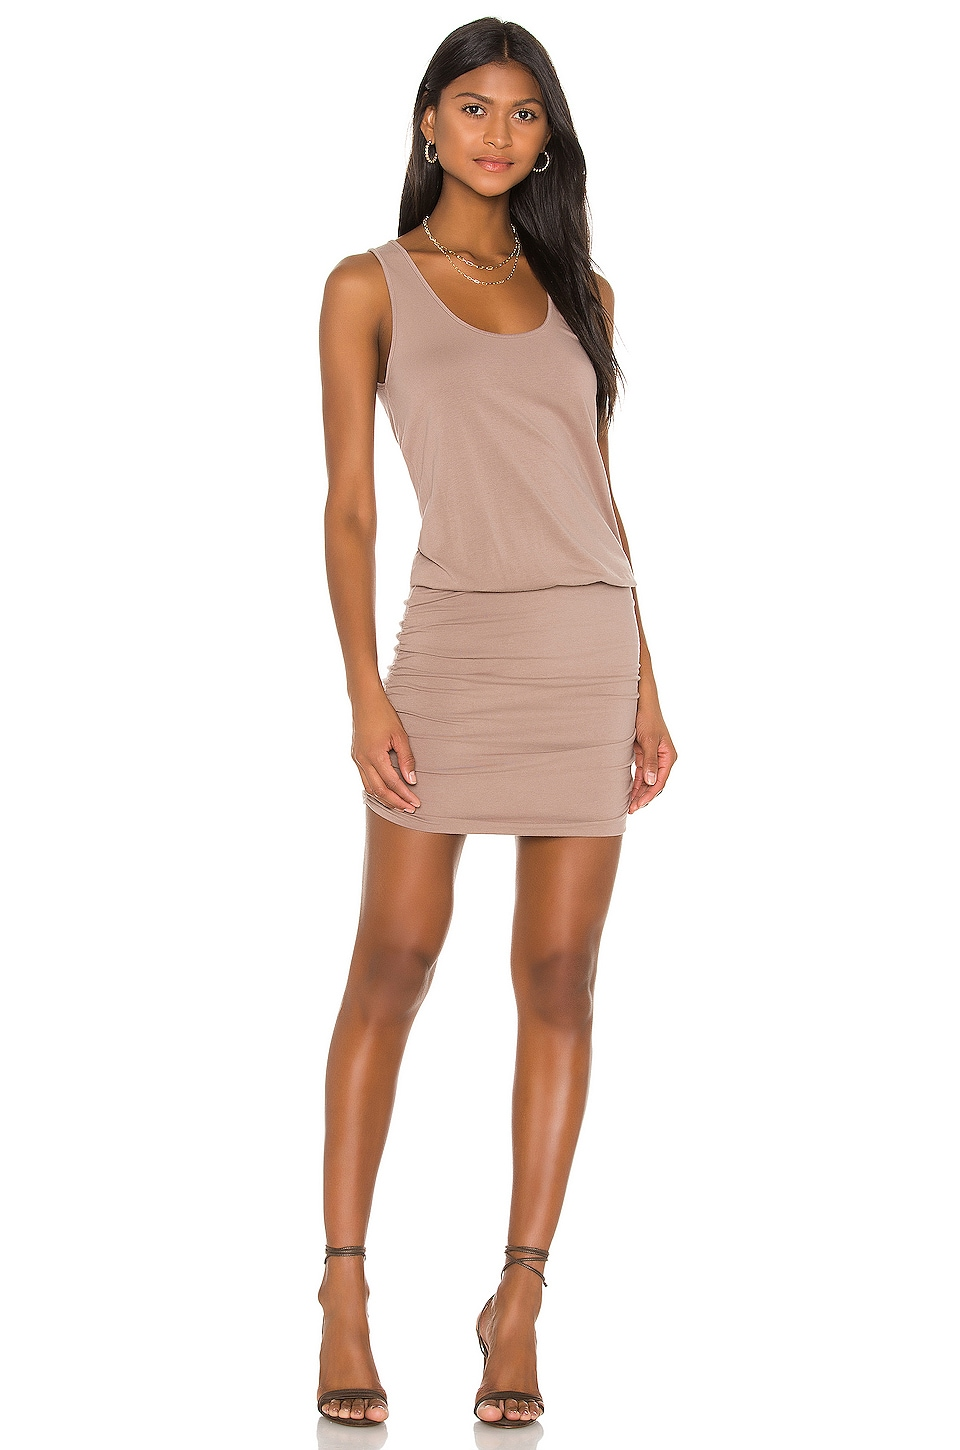 Draped Modal Jersey Mini Dress             Bobi                                                                                                       CA$ 90.97 9